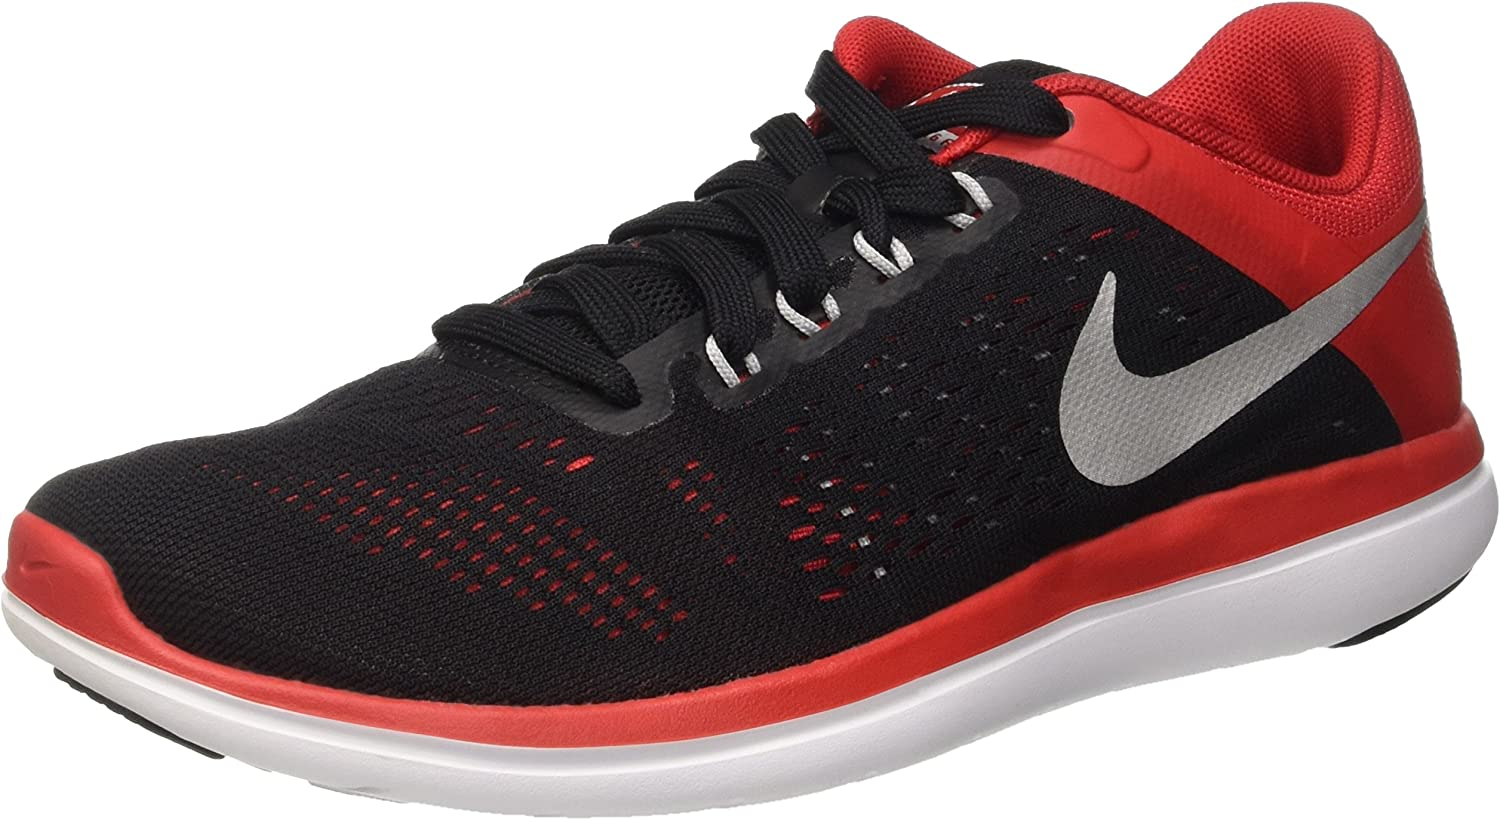 Nike Men's Flex 2016 Running shoes, Black (Black   Metallic Silver-University Network), 6 UK